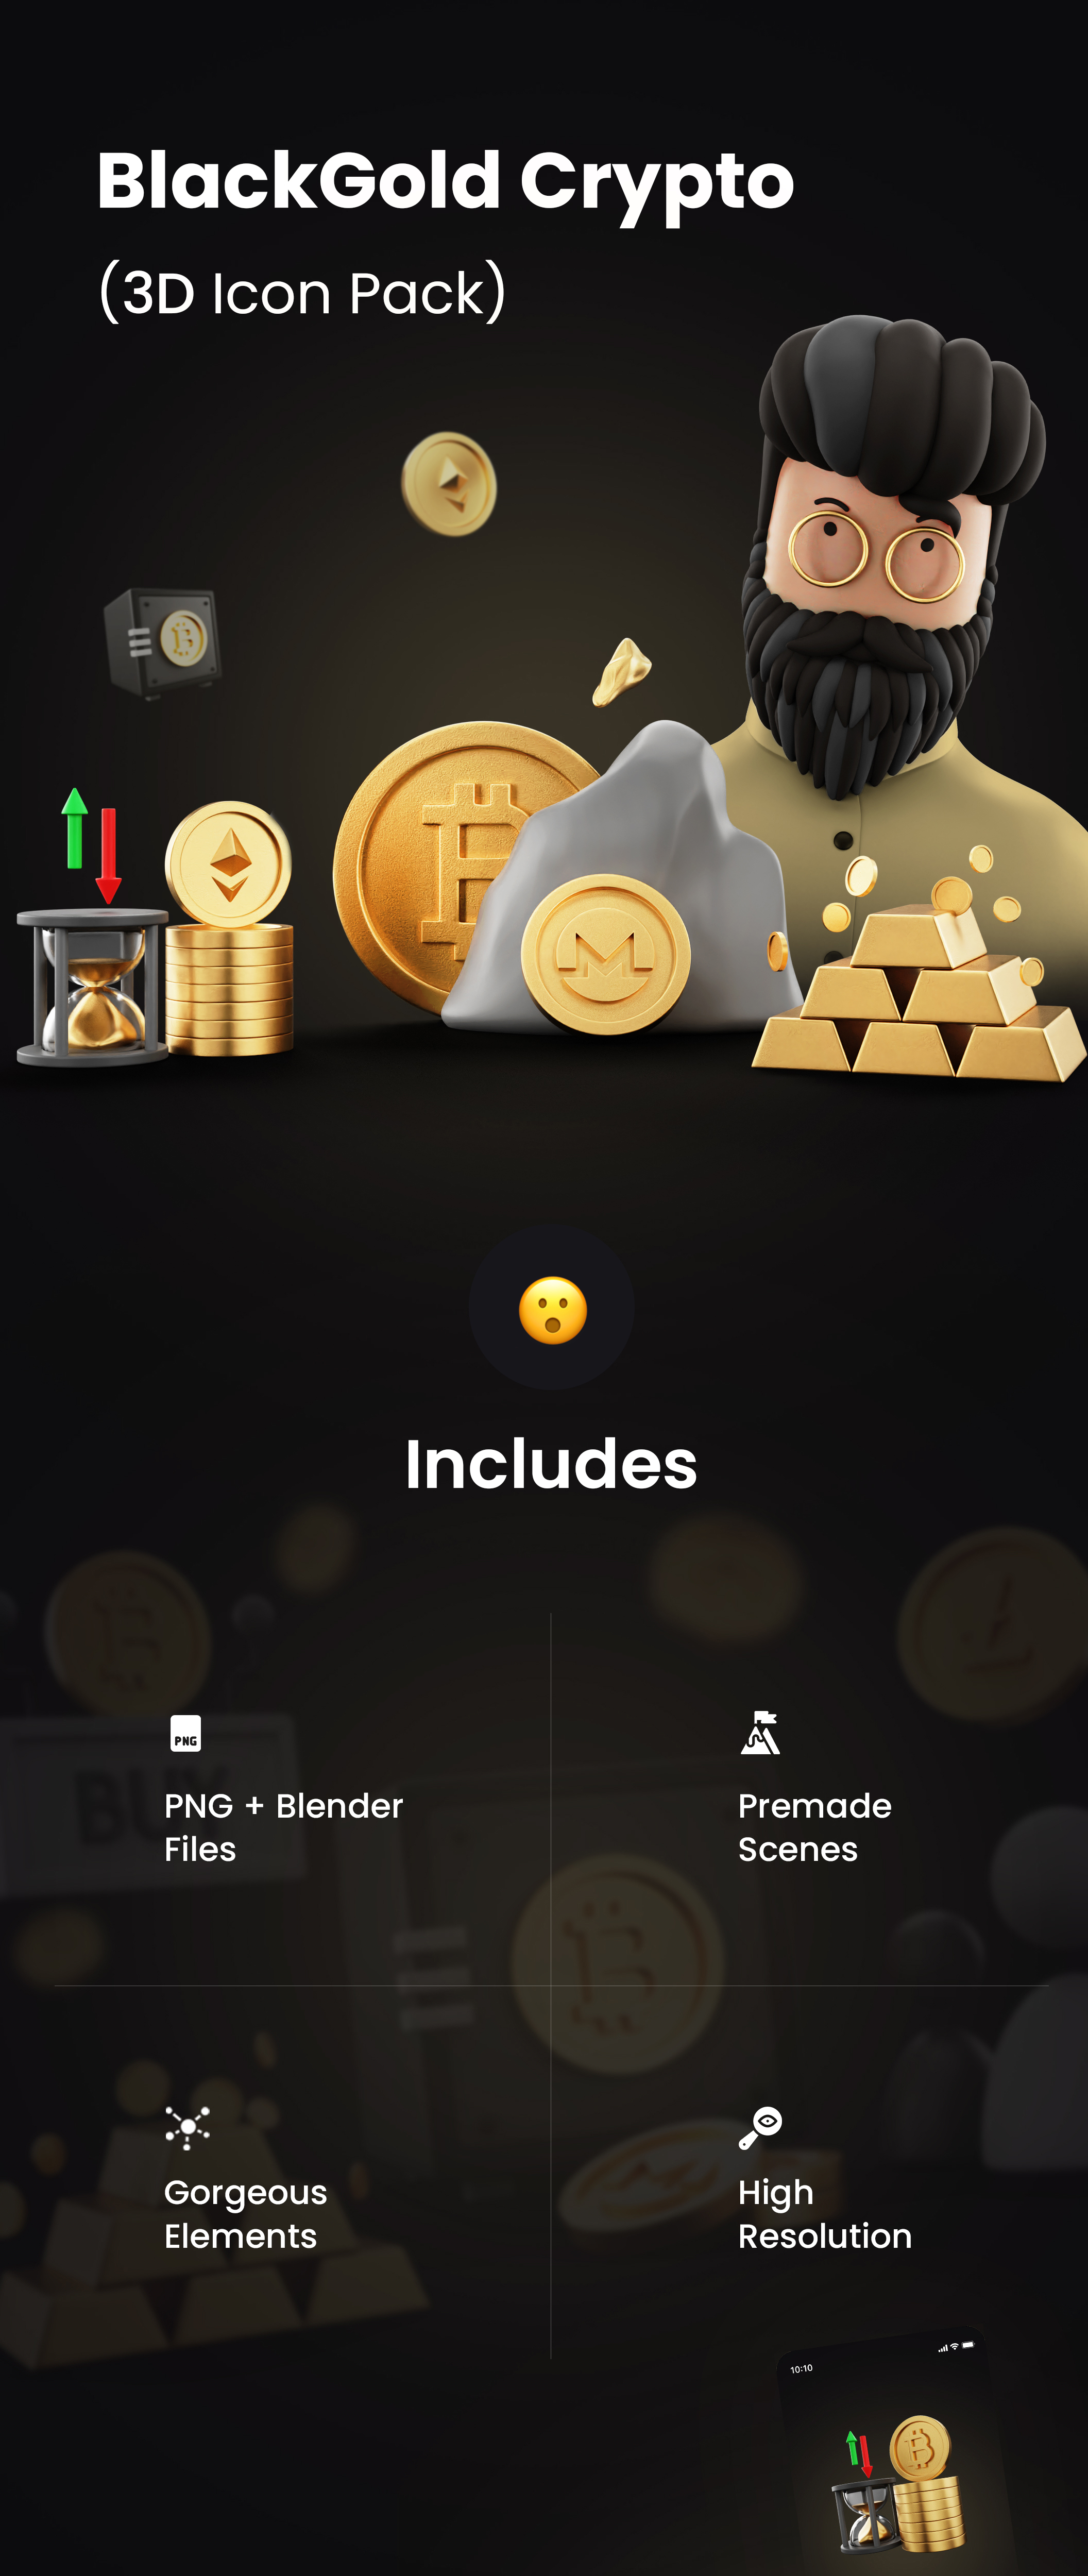 Premium 3D Icon Pack for Cryptocurrency   BlockGold Pro   Iqonic Design premium 3d icon pack for cryptocurrency BlackGold Pro 3D 1st full preview imagelong preview 1628934630169